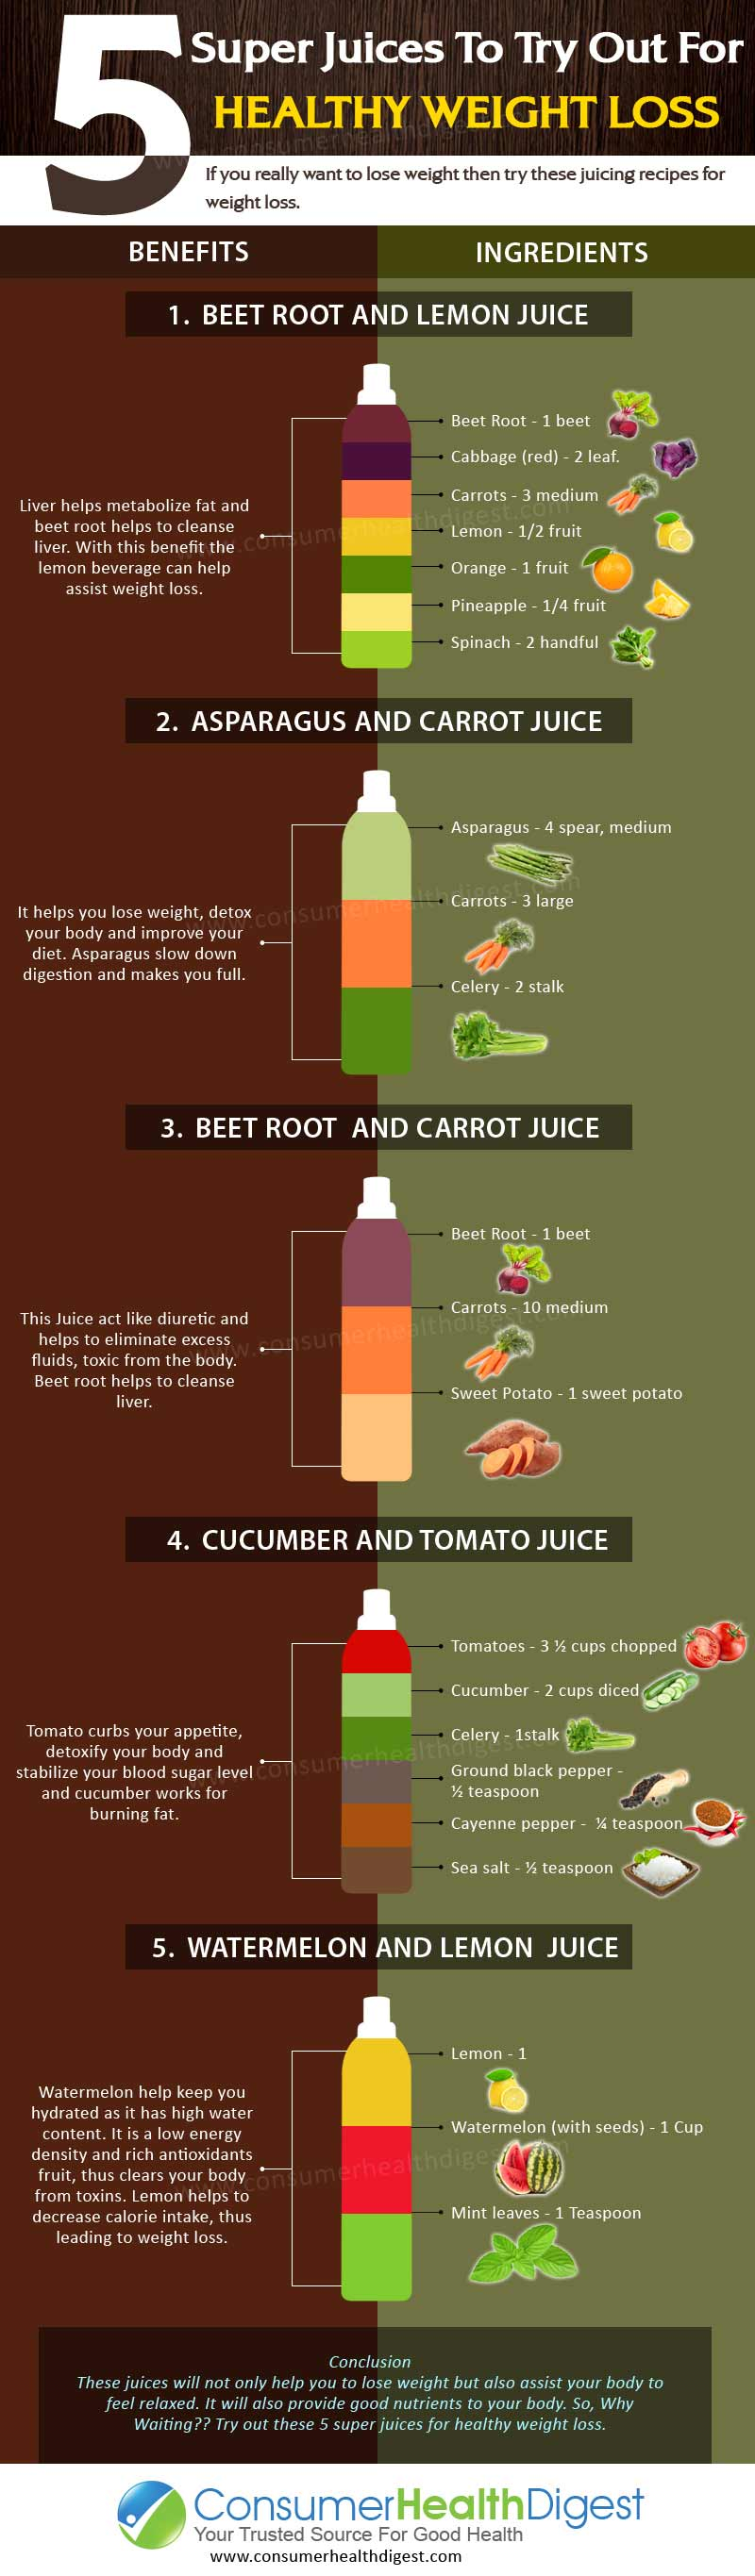 Super Juices for Healthy Weight Loss